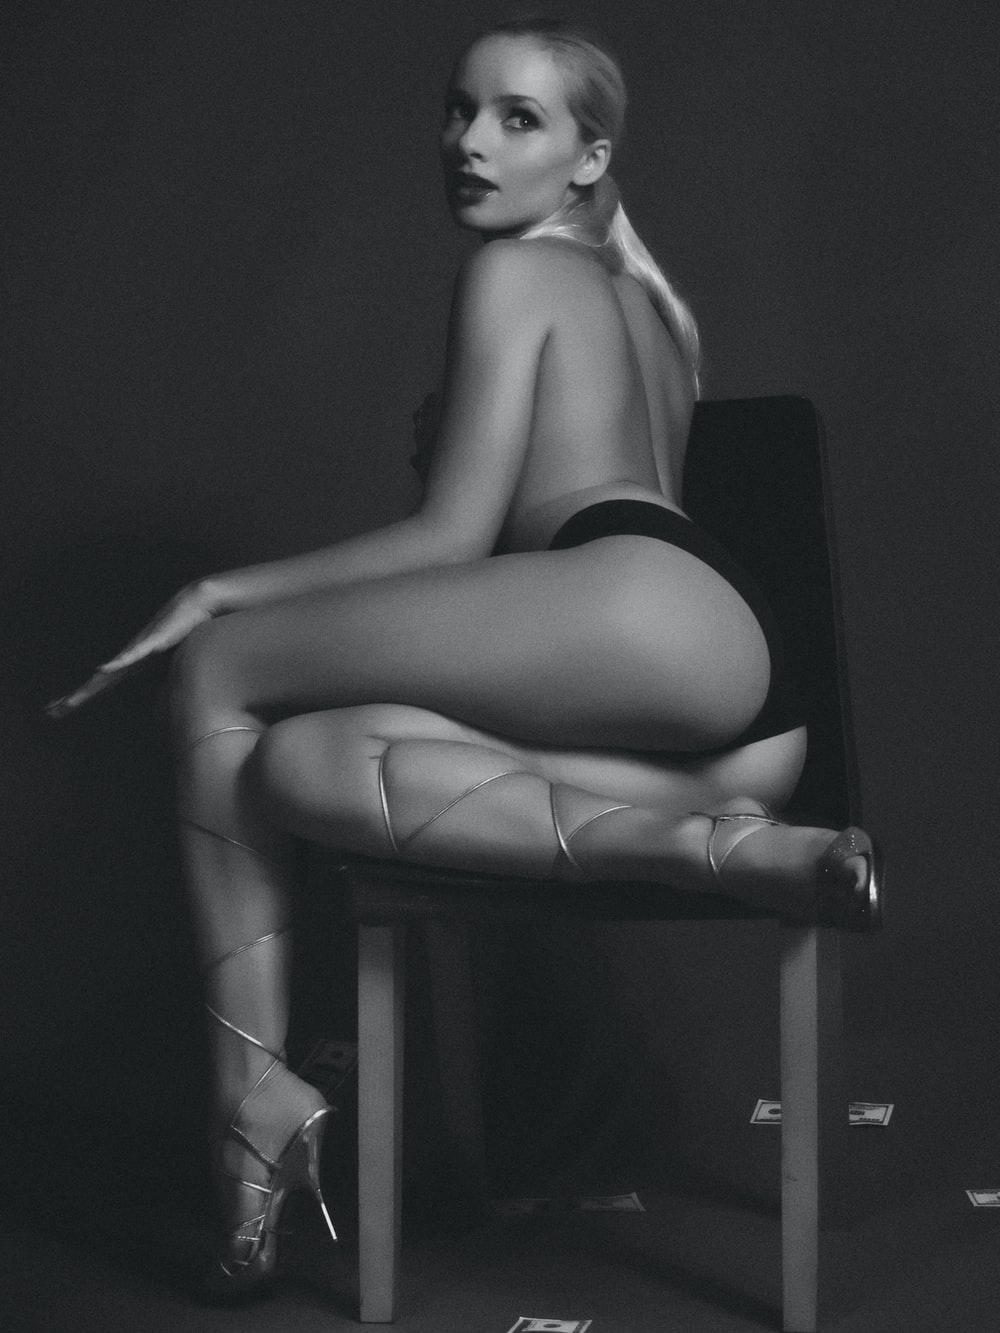 topless woman wearing black panty sitting on chair facing back